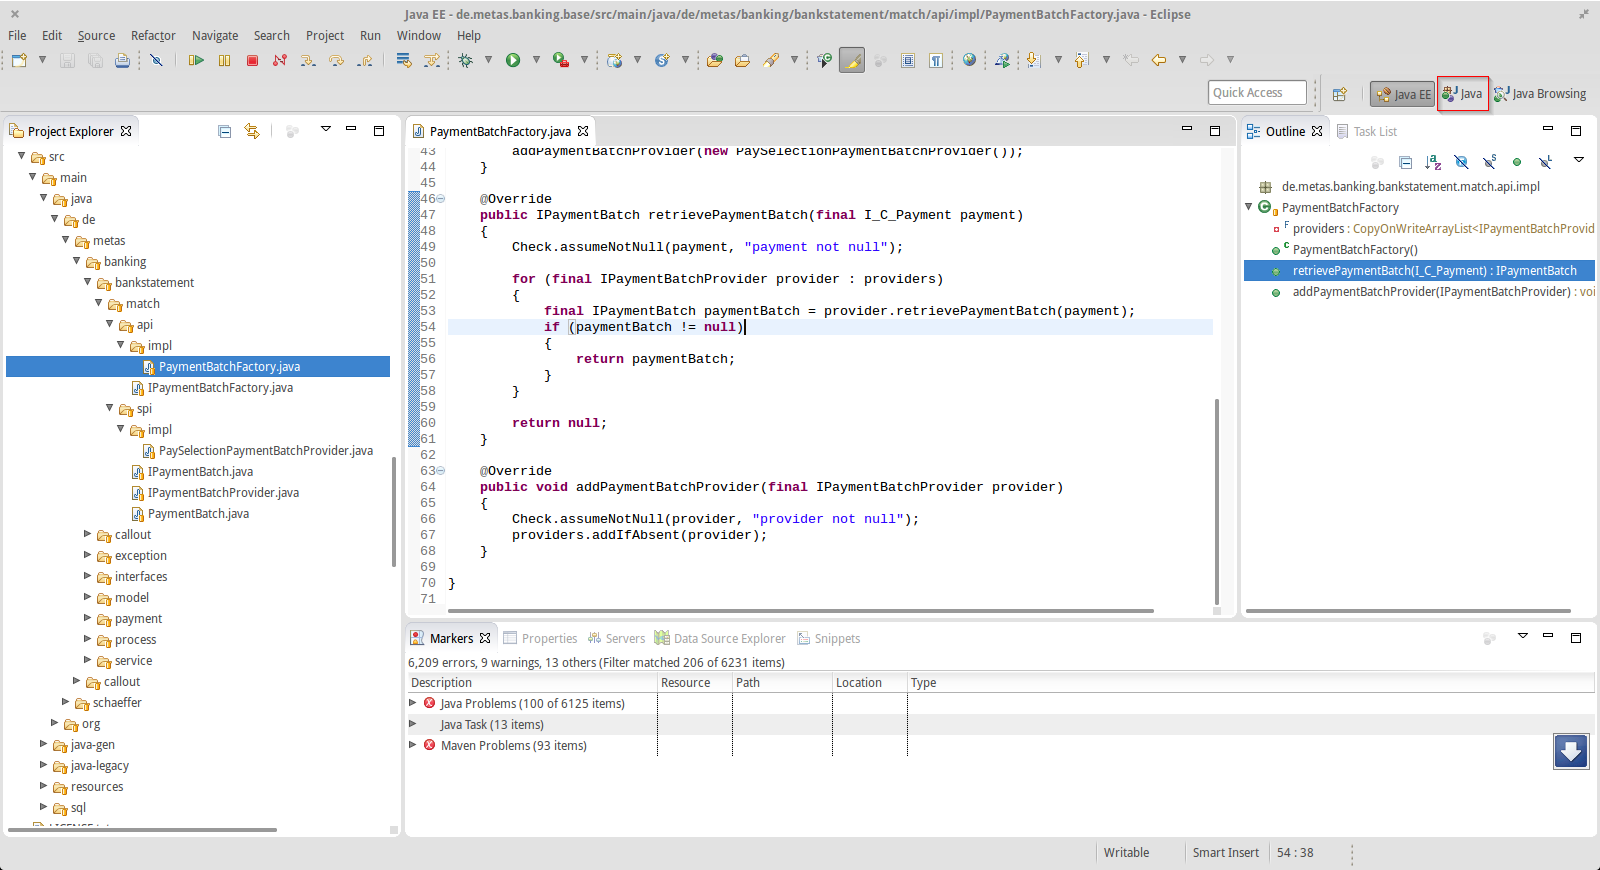 troubleshooting_ide_eclipse_java_ee_perspective